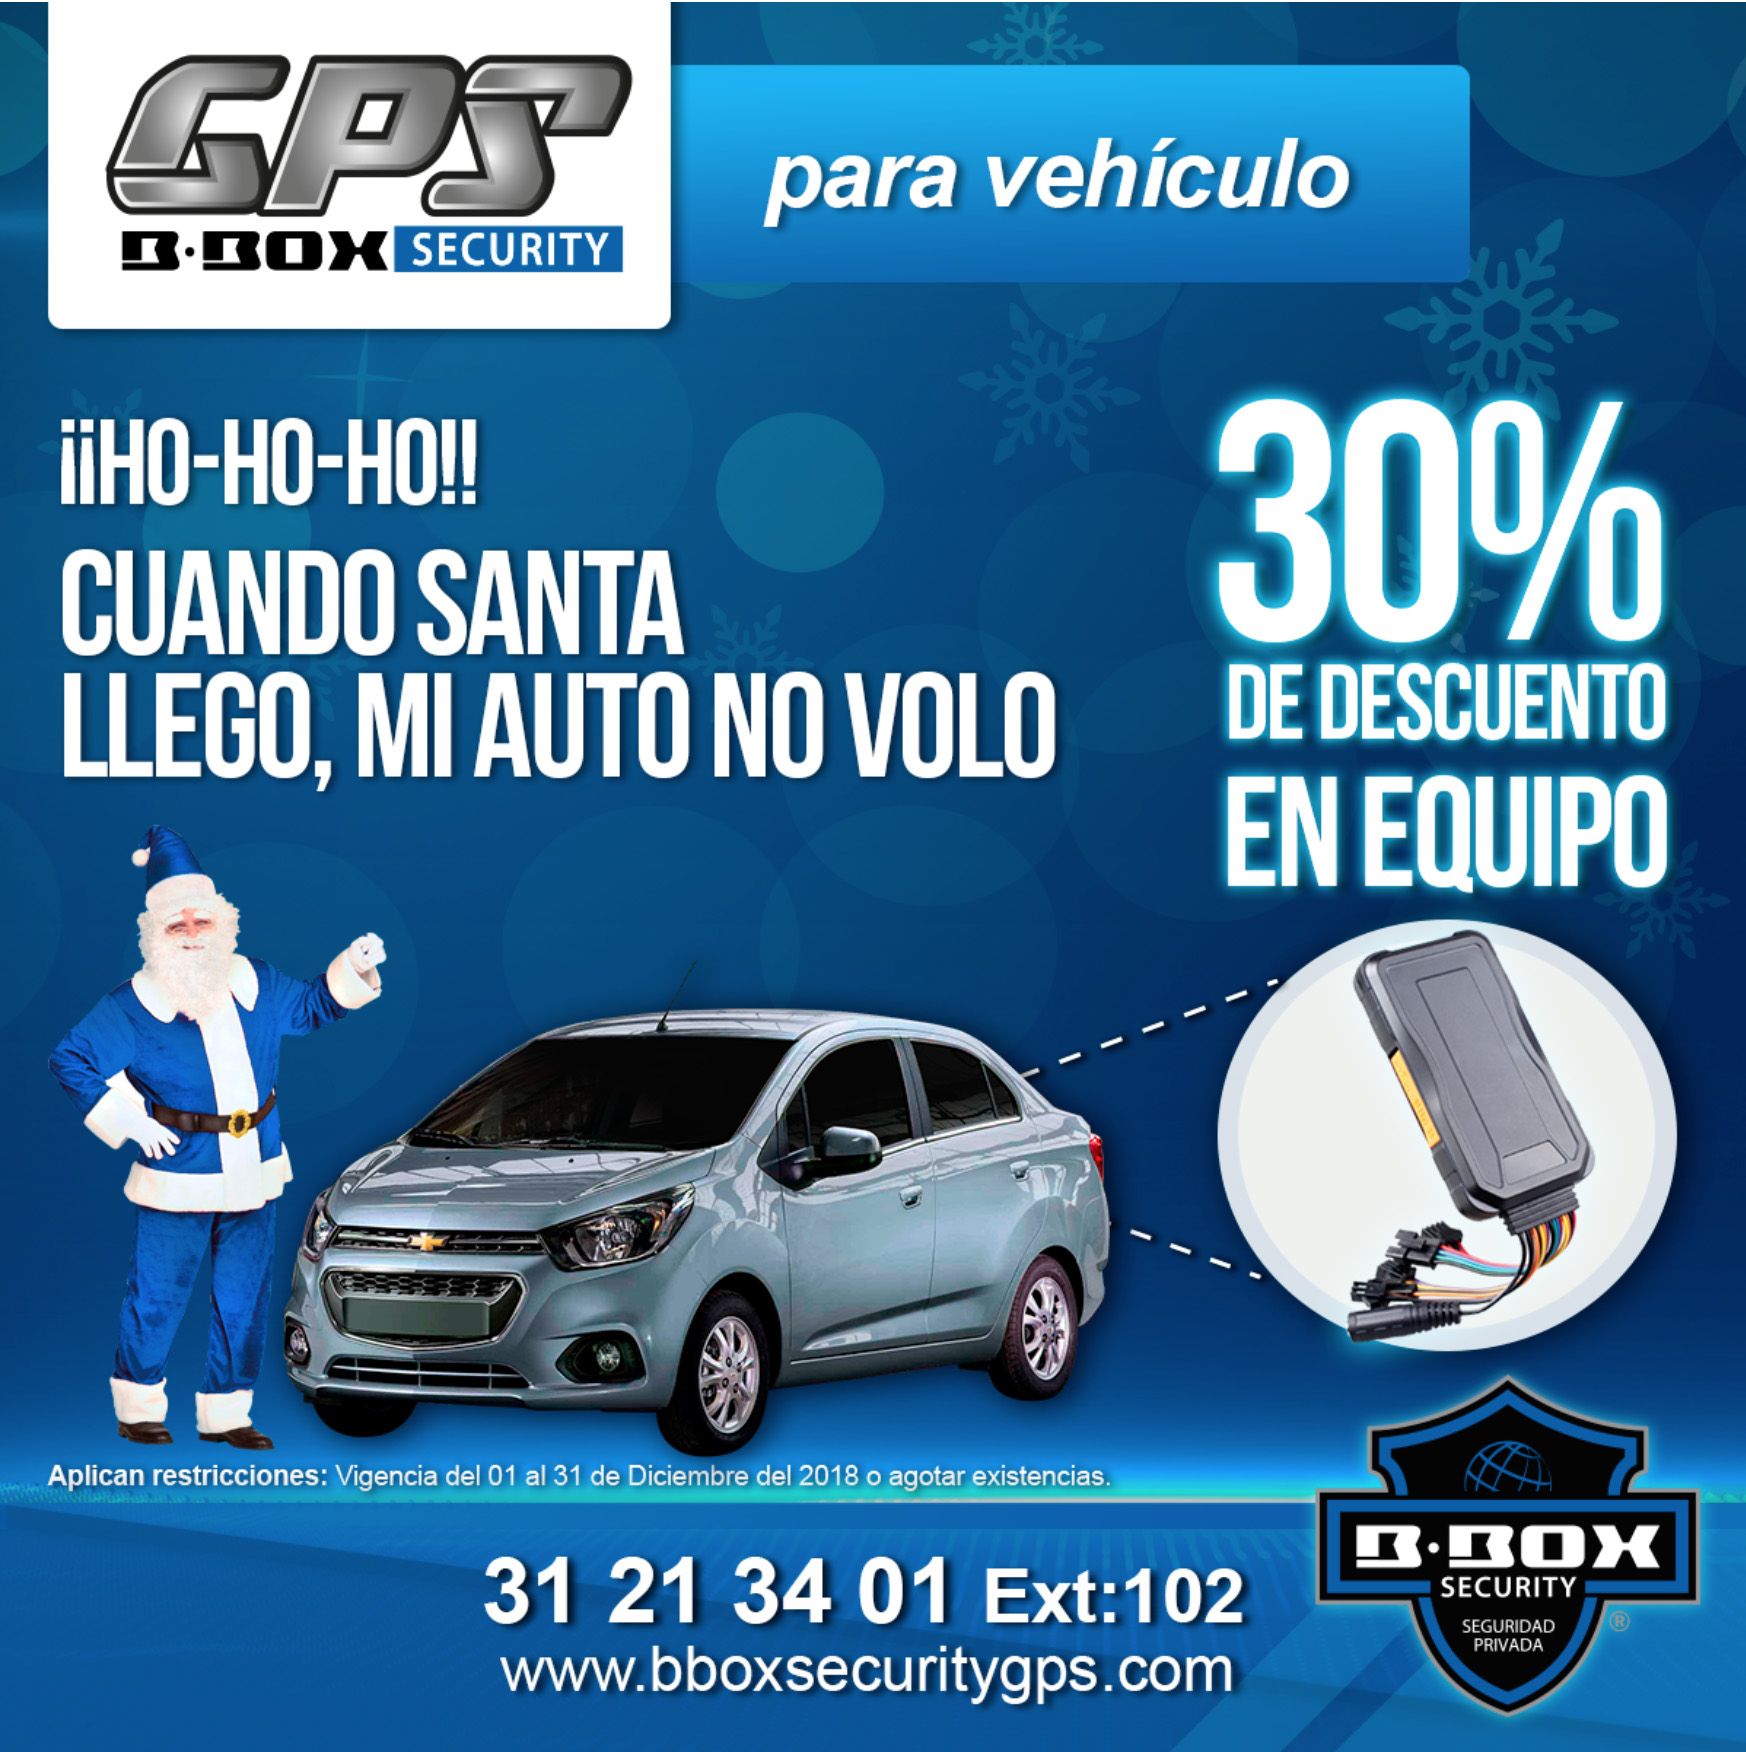 BBOX Security Seguridad guardias virtuales promocion coche - Servicio de Rastreo Satelital y GPS en Guadalajara | BBOX Security